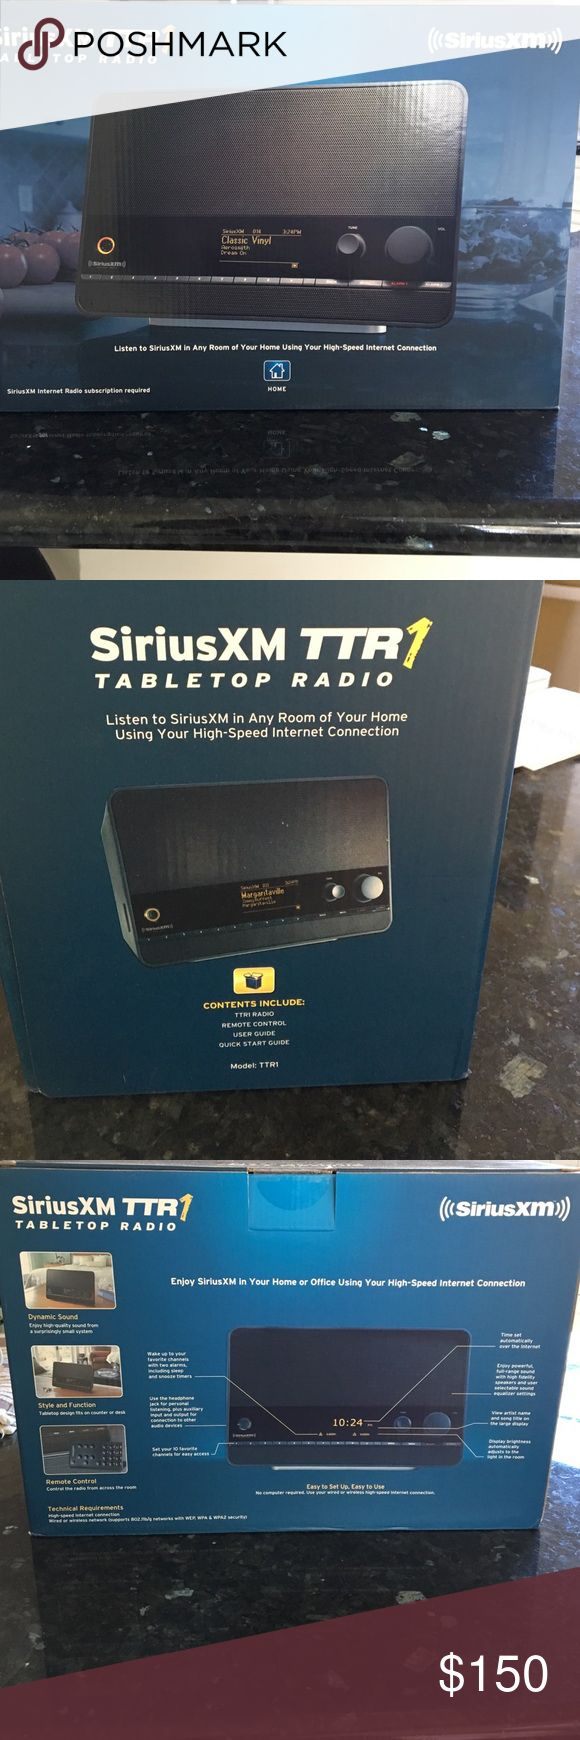 SiriusXM TTR table top radio Brand New!! SiriusXM TTR table top radio.  Includes TTR1 radio, remote control, user guide and quick start guide.  Sirius internet radio subscription required. SiriusXM Other